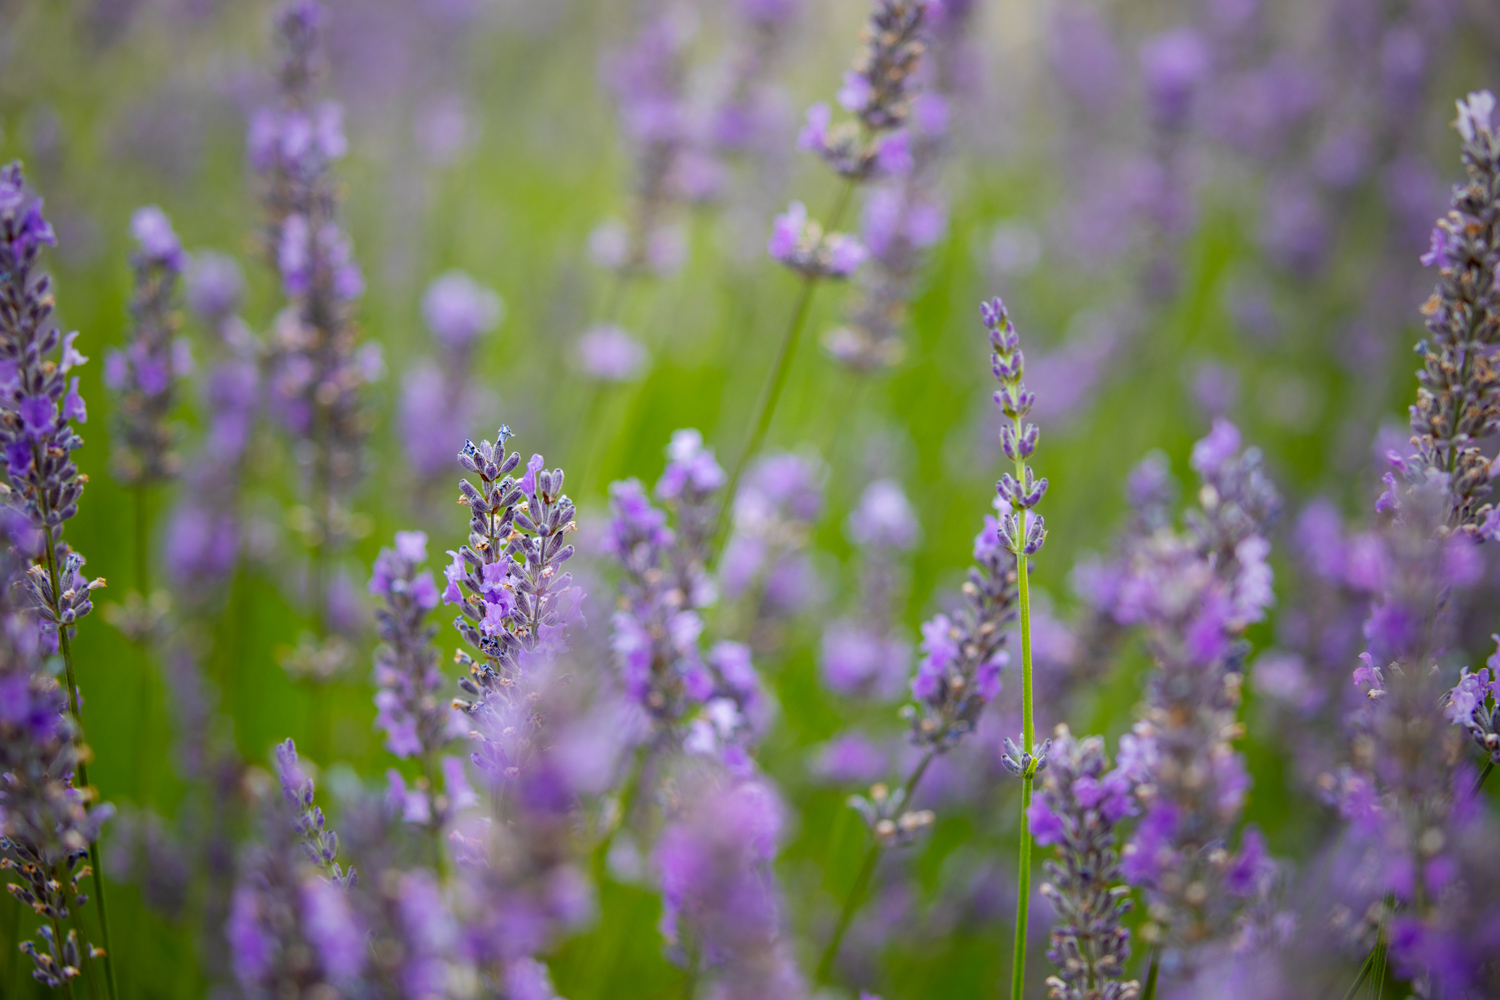 a reduced opacity version of the lavender image